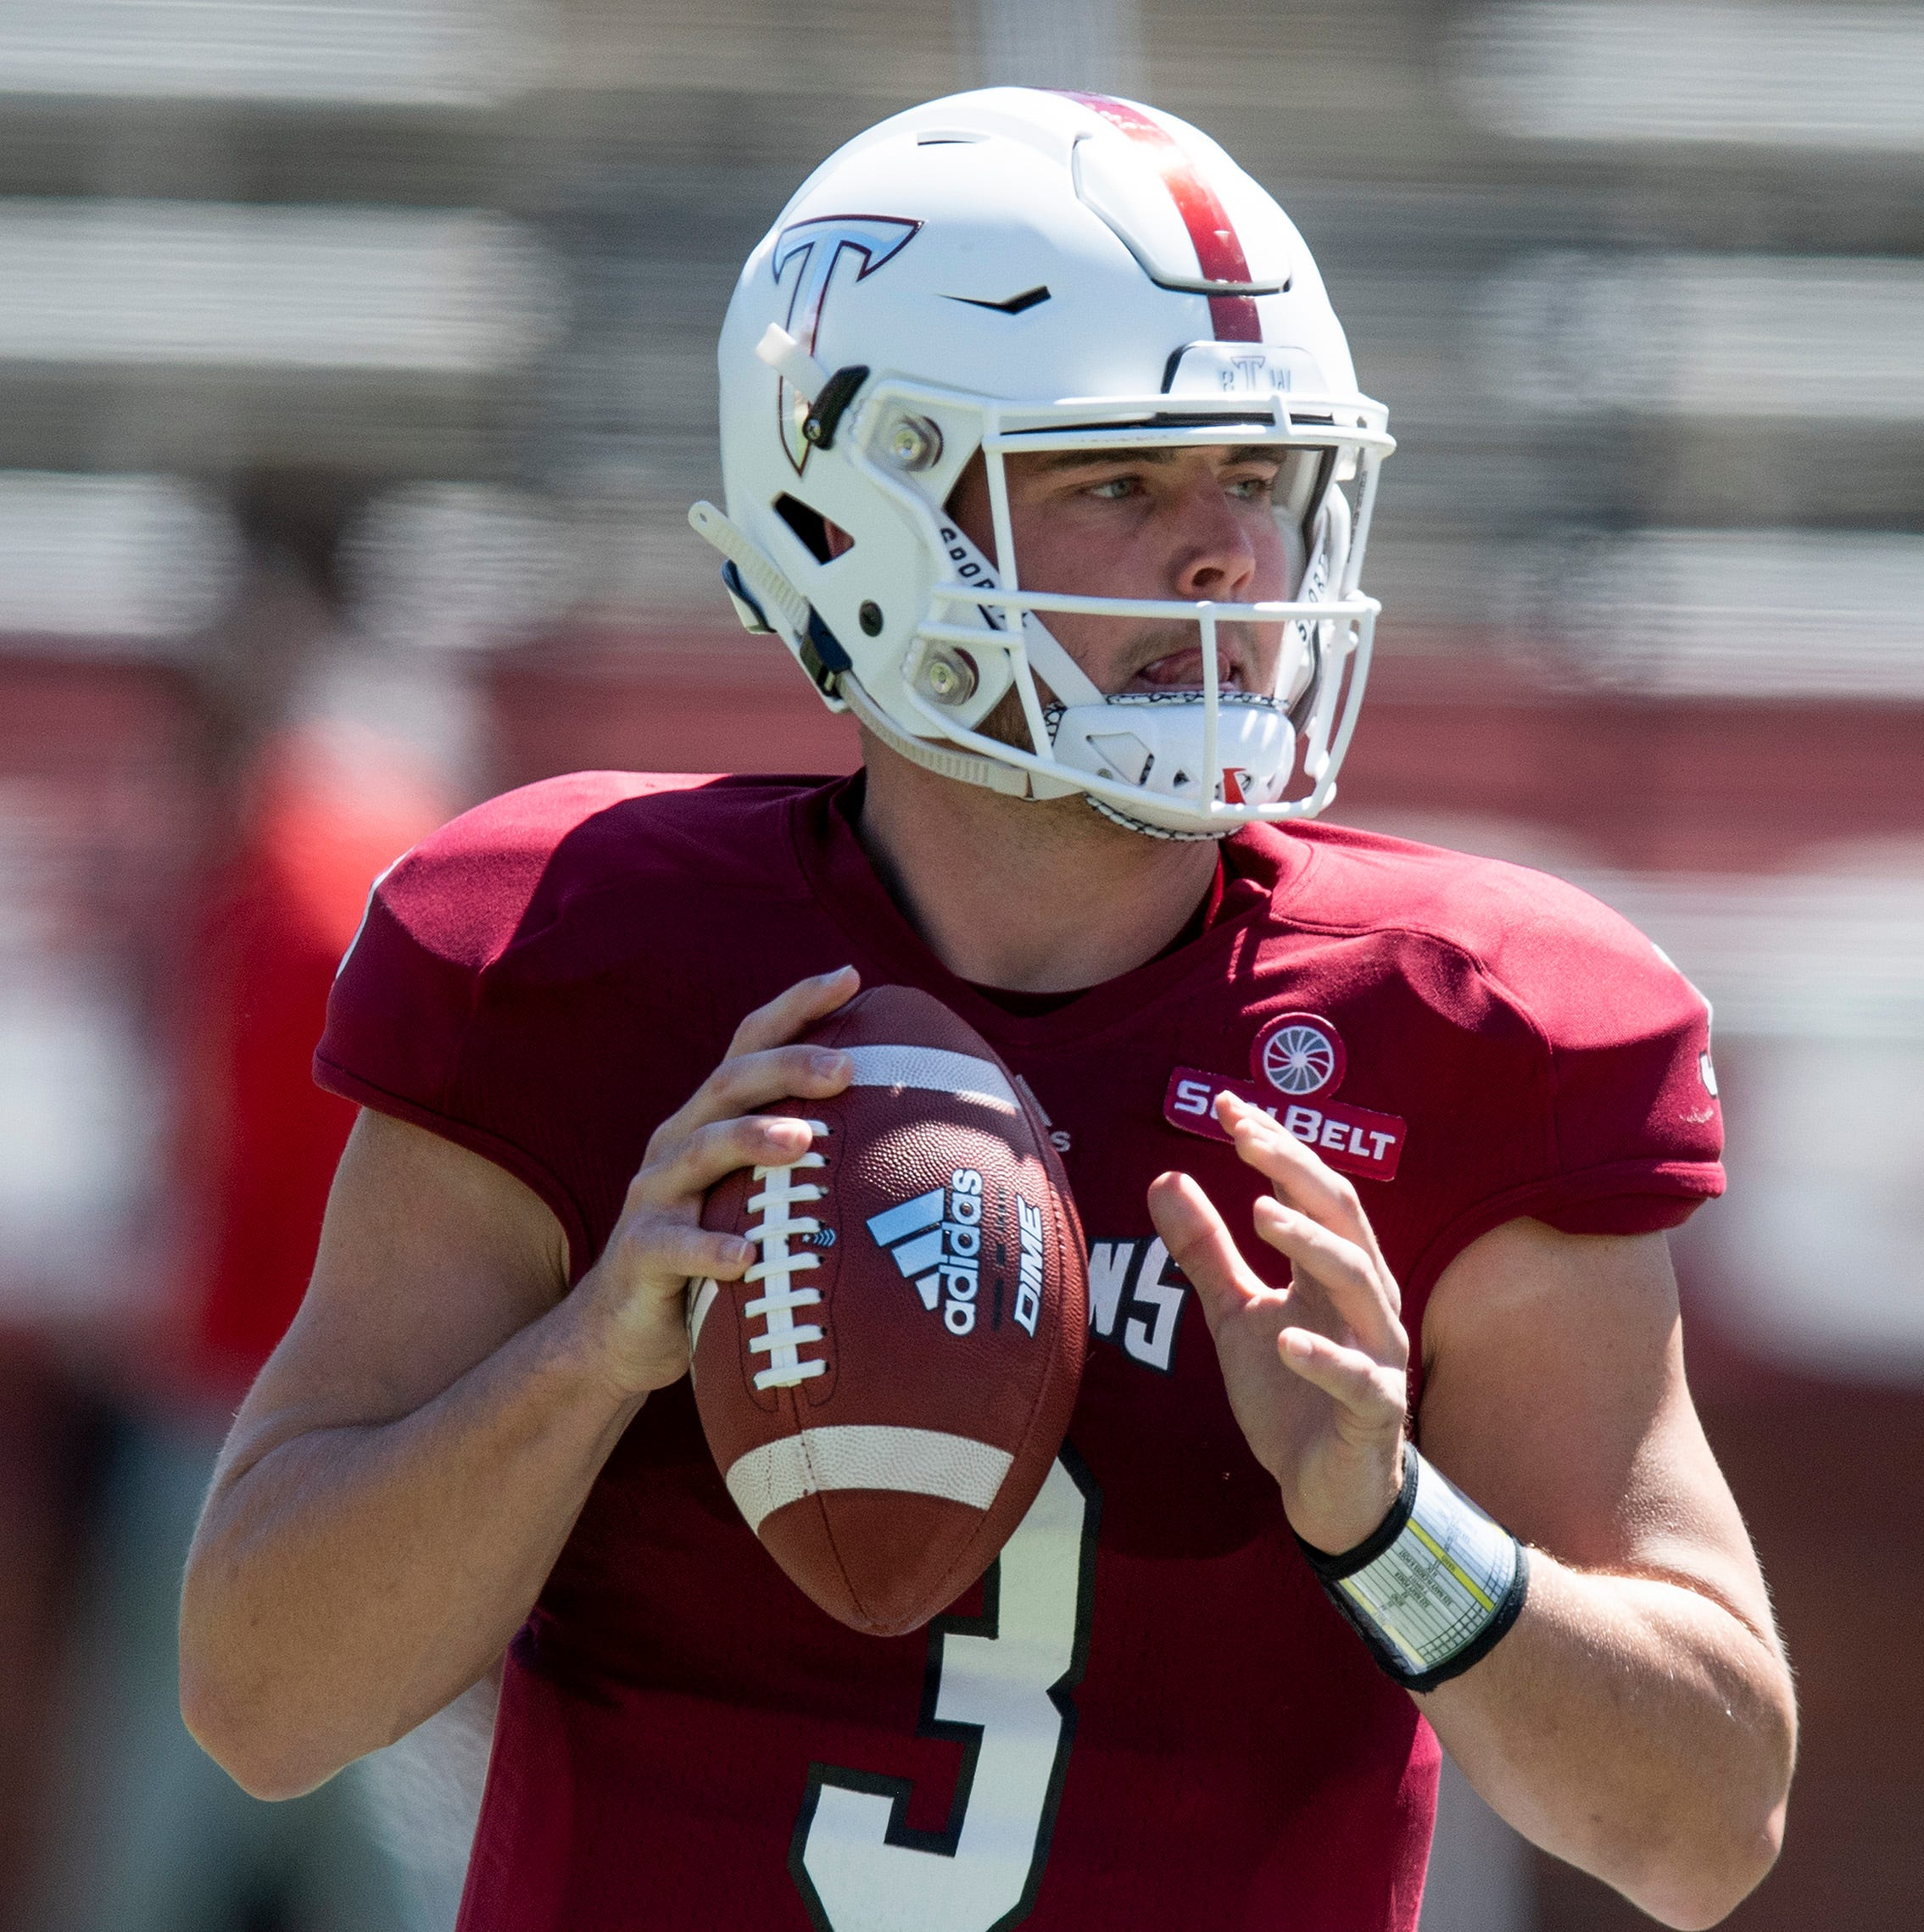 Troy graduate transfer quarterback Sawyer Smith commits to Kentucky football